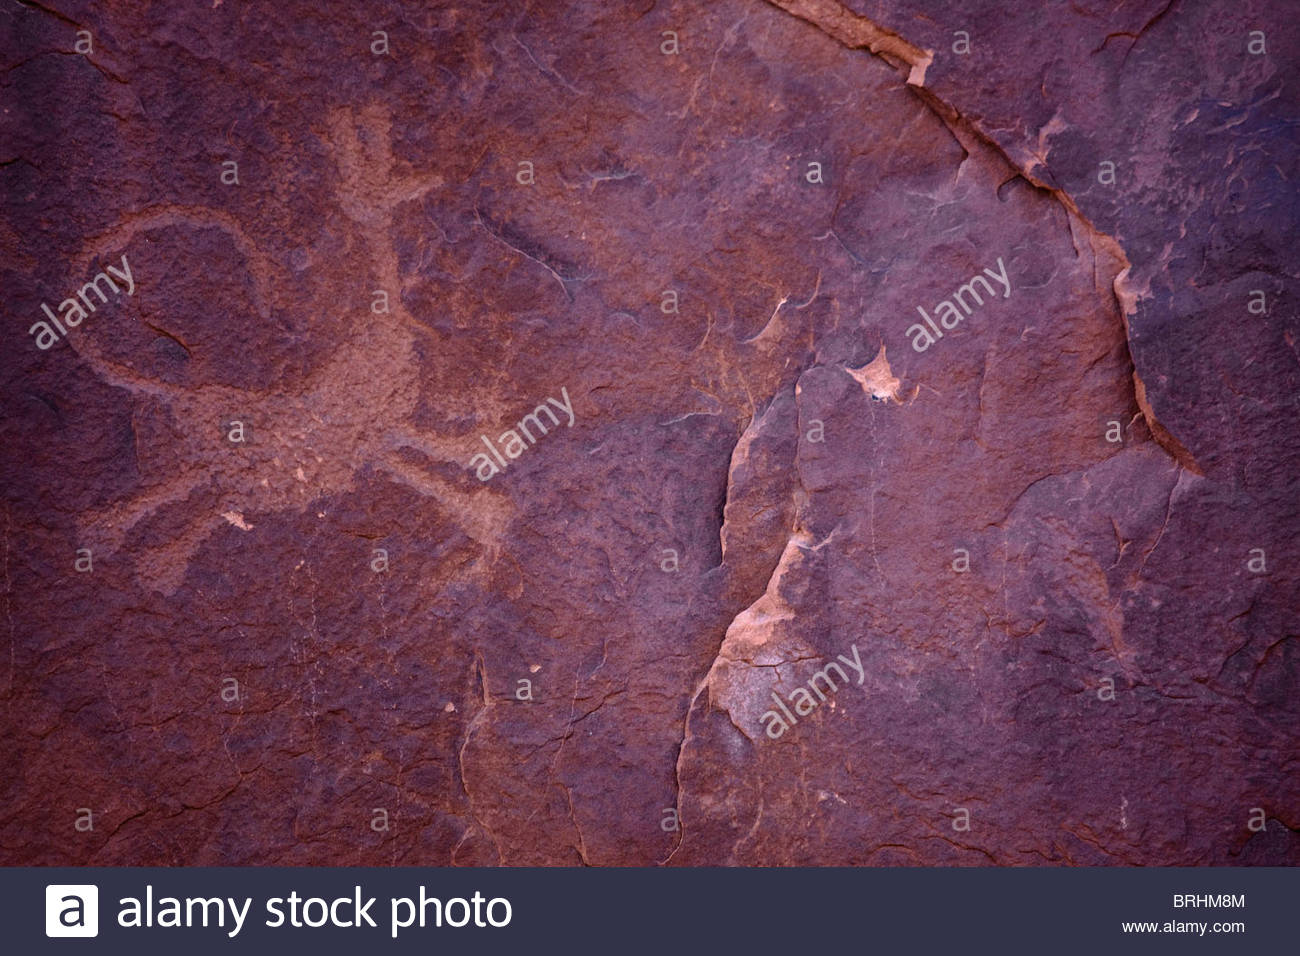 An ancient piece of rock art that resembles an animal figure running. - Stock Image